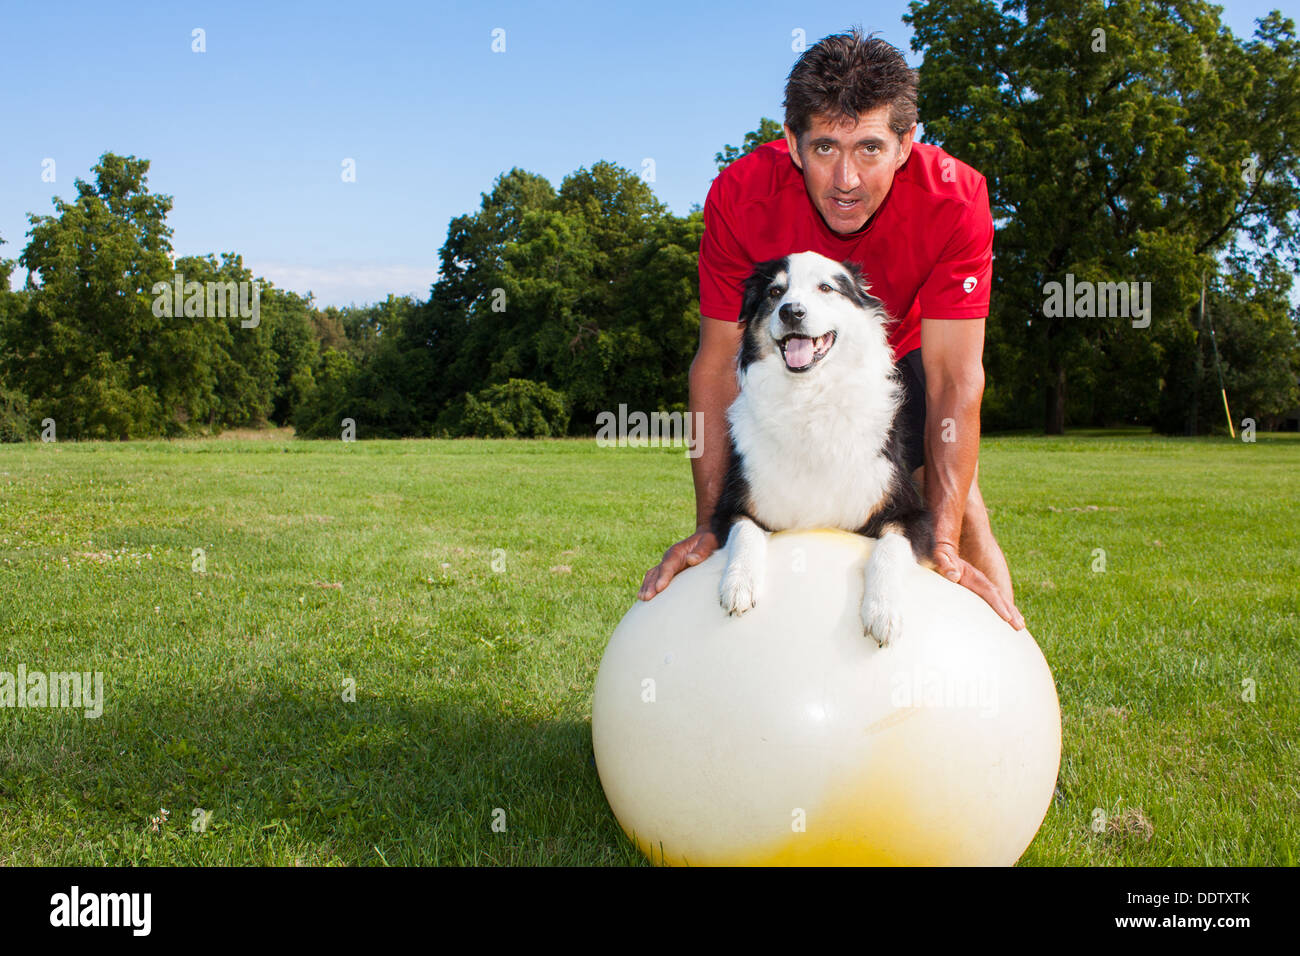 A dog trainer helping his dog exercise on a yoga ball - Stock Image